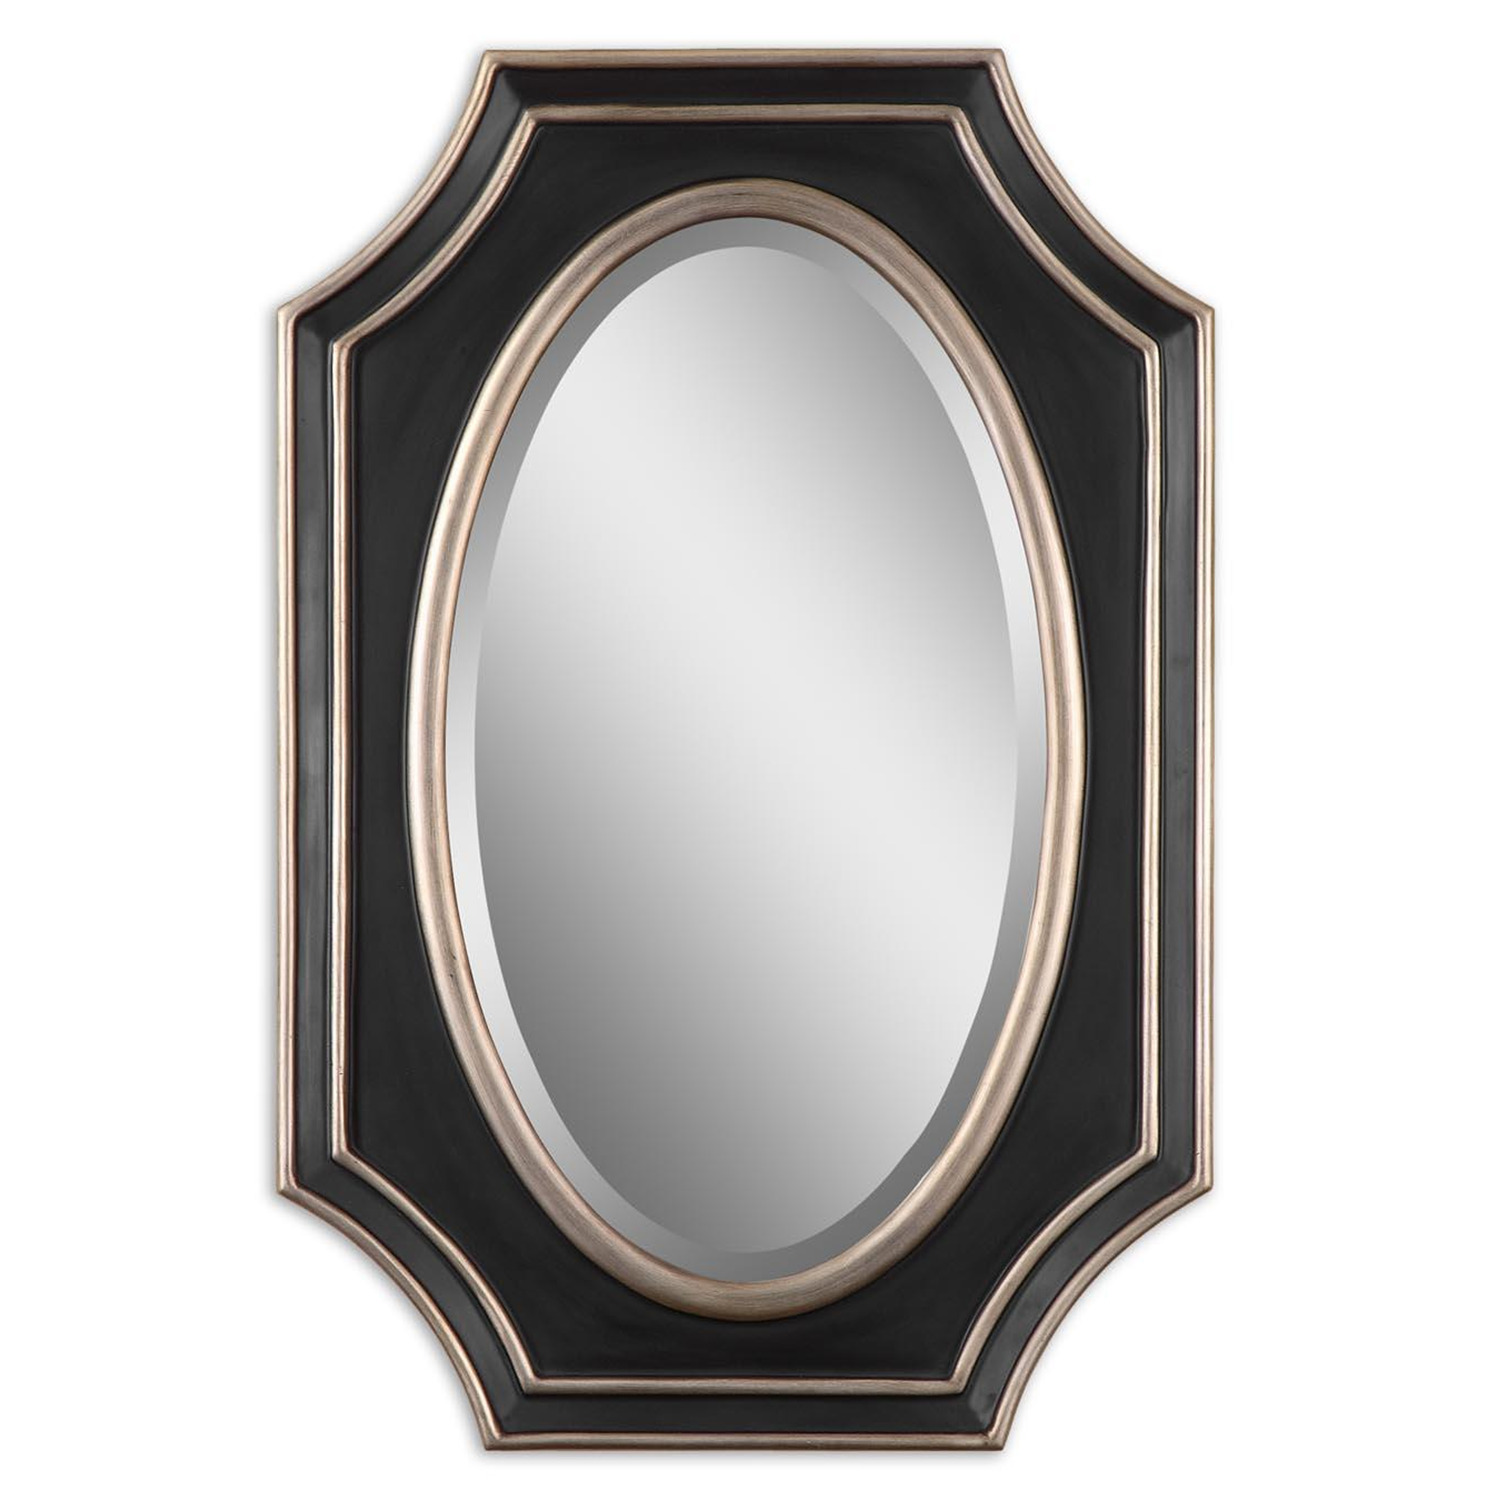 Uttermost shapely decorative wall mirror by oj commerce for Decorative mirrors